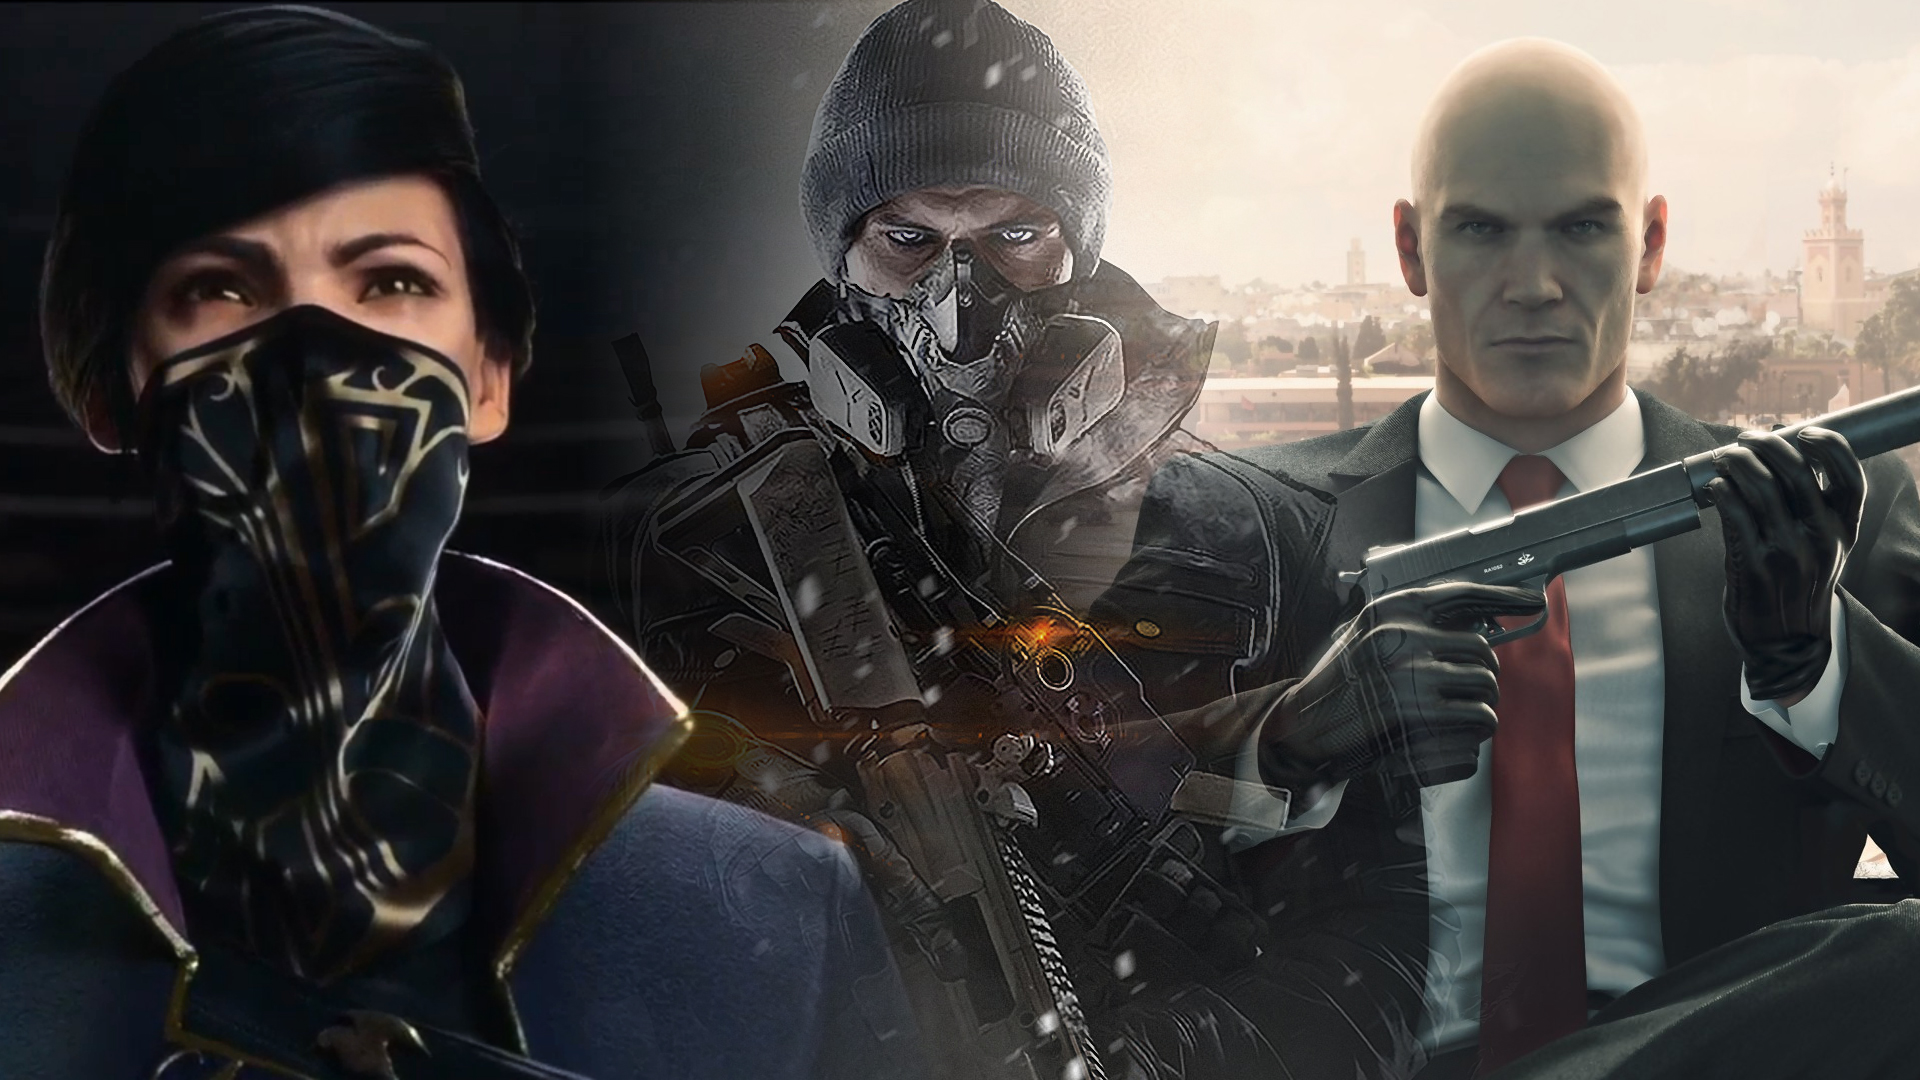 vg247_goty_banners_2_dh2_division_hitman